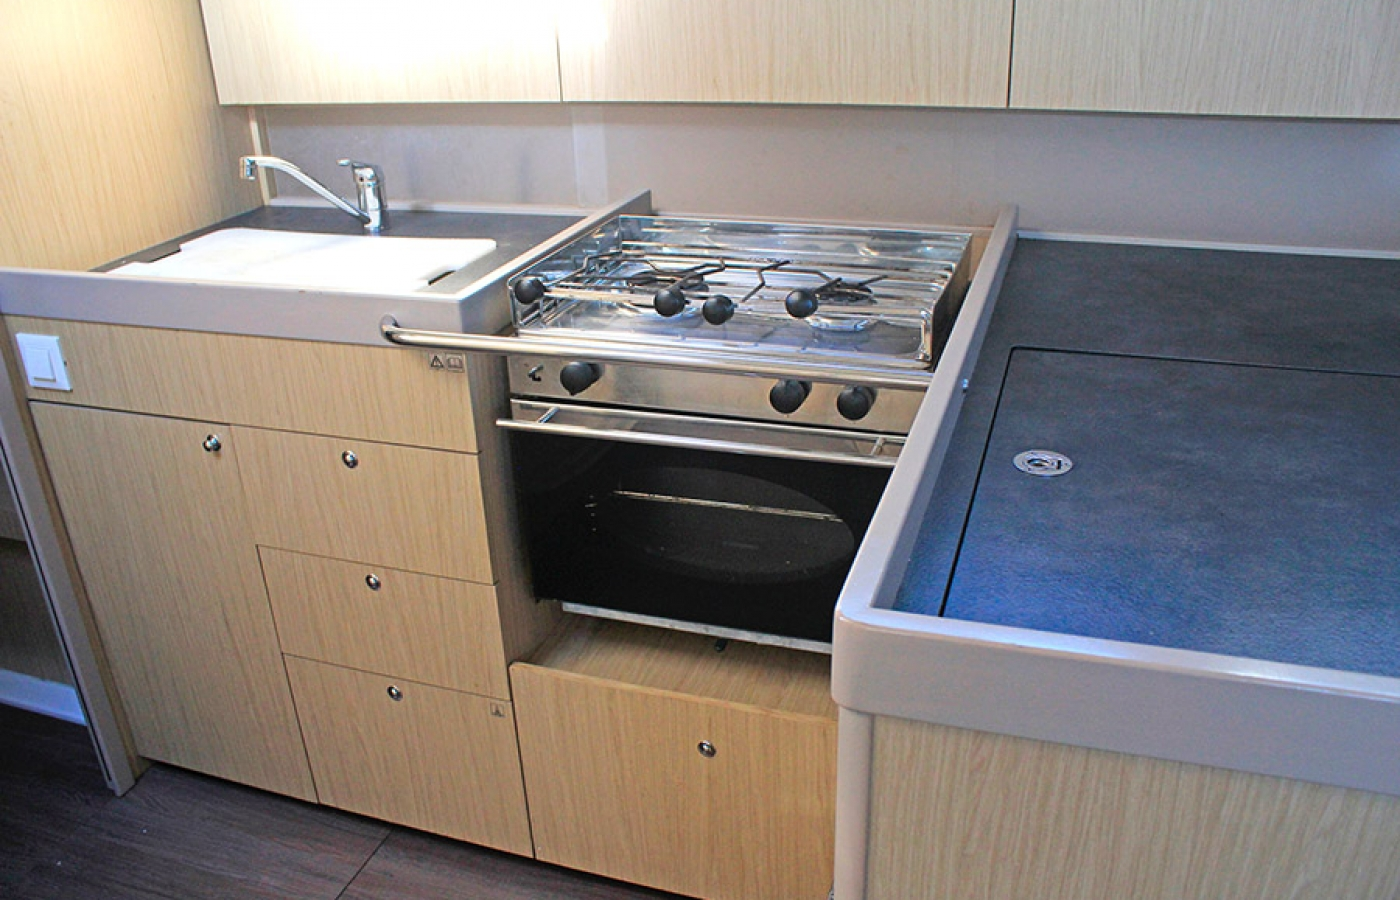 Silver modern kitchen appliances to make cooking on board easy